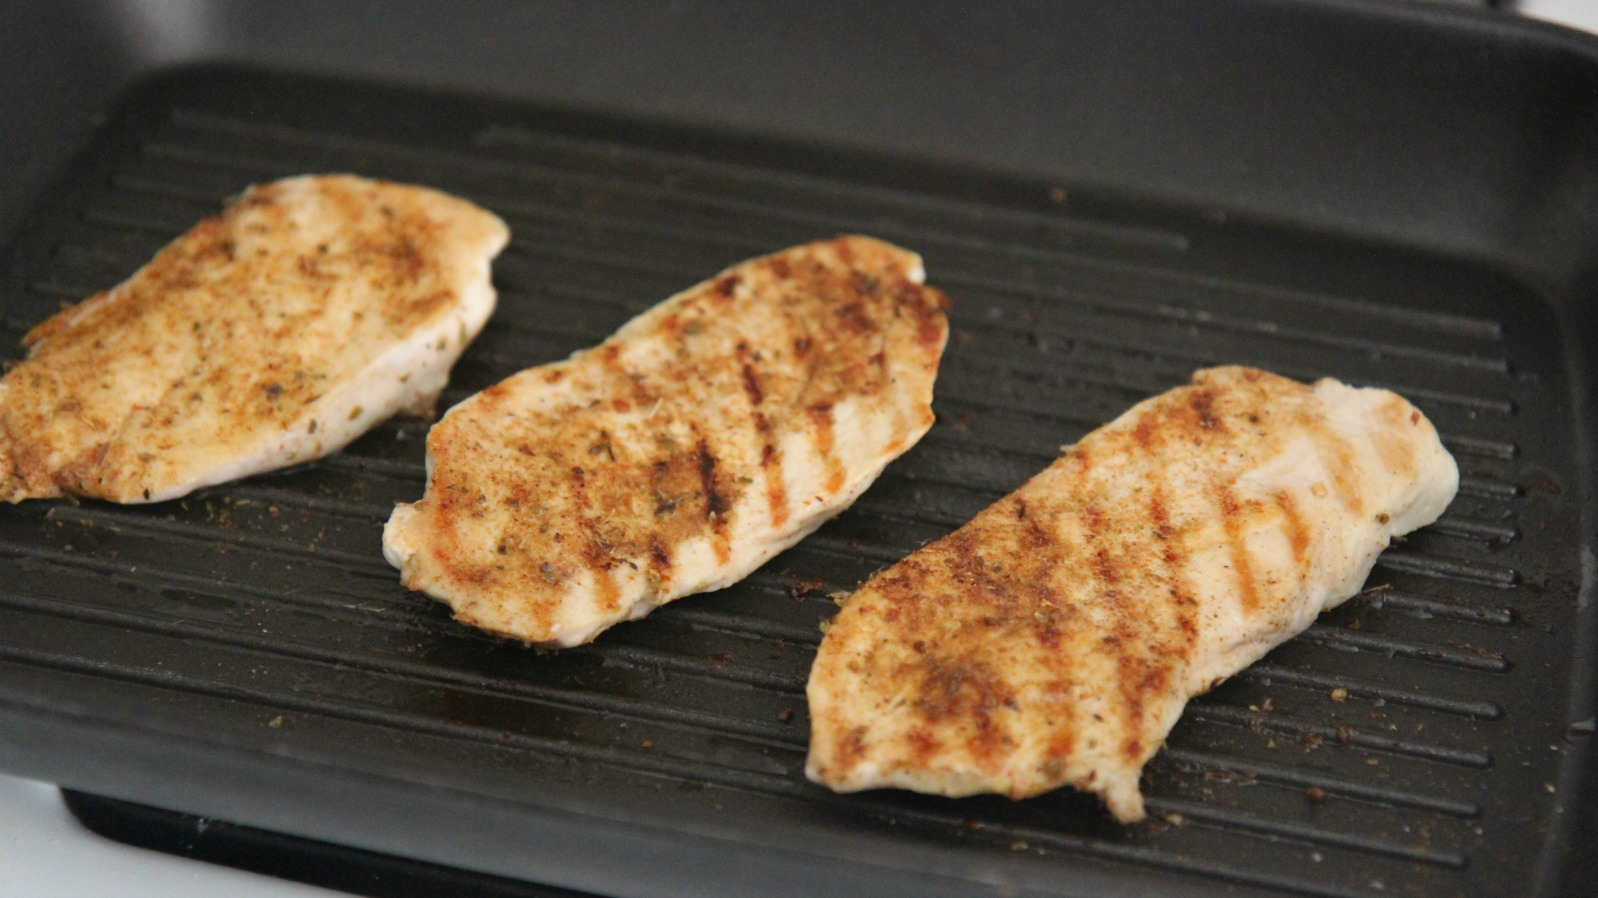 Grill or pan-fry the chicken breasts until cooked through.